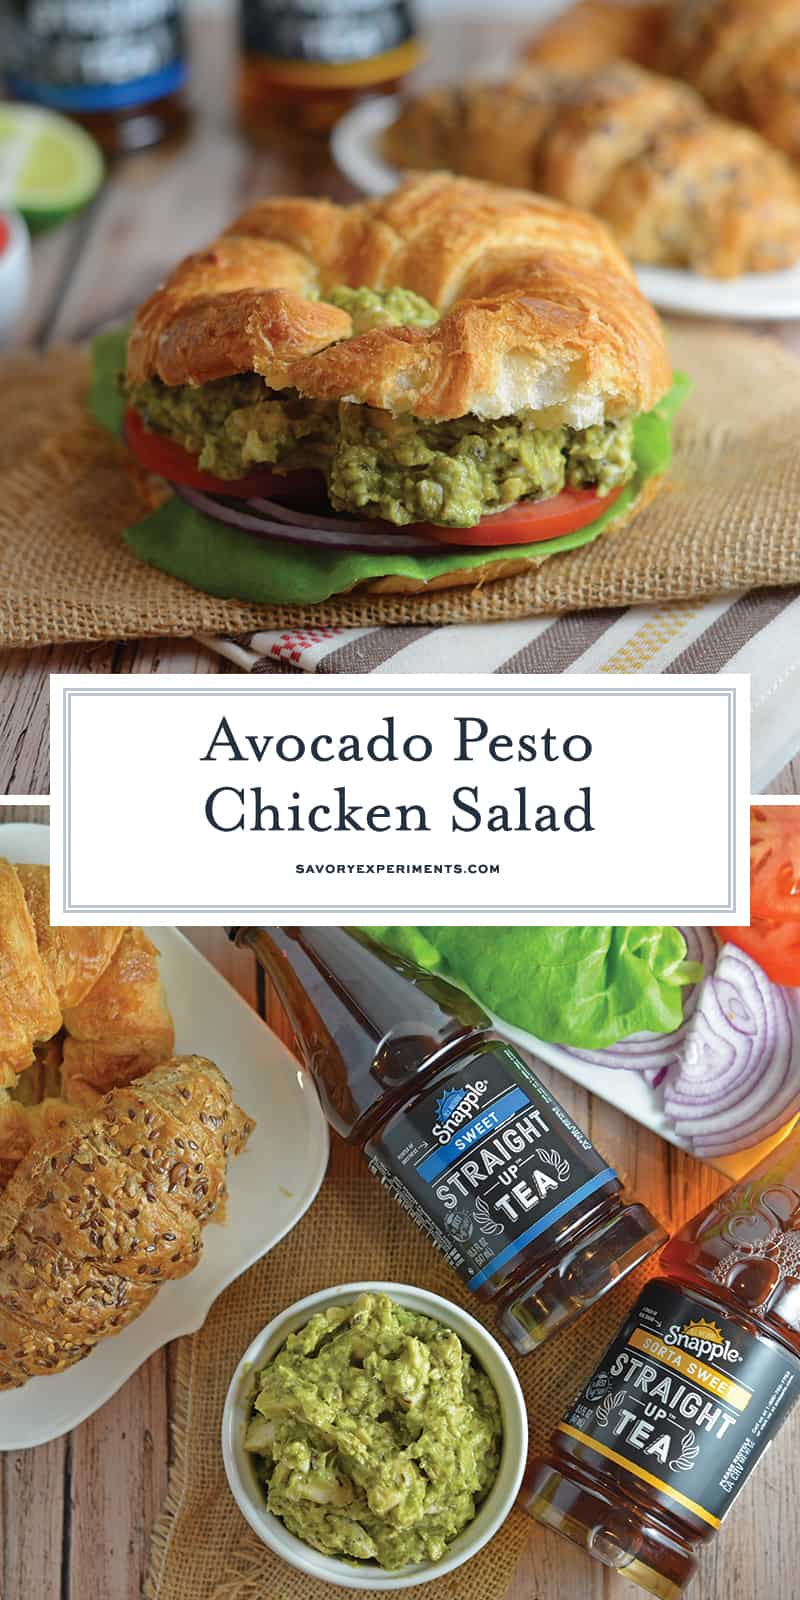 Pesto Avocado Chicken Salad swaps out the heavy mayonnaise for creamy avocado. Pesto adds flavor and lime juice brightens shredded chicken from precooked rotisserie chicken. #healthychickensalad #avocadochickensalad #easychickensalad www.savoryexperiments.com